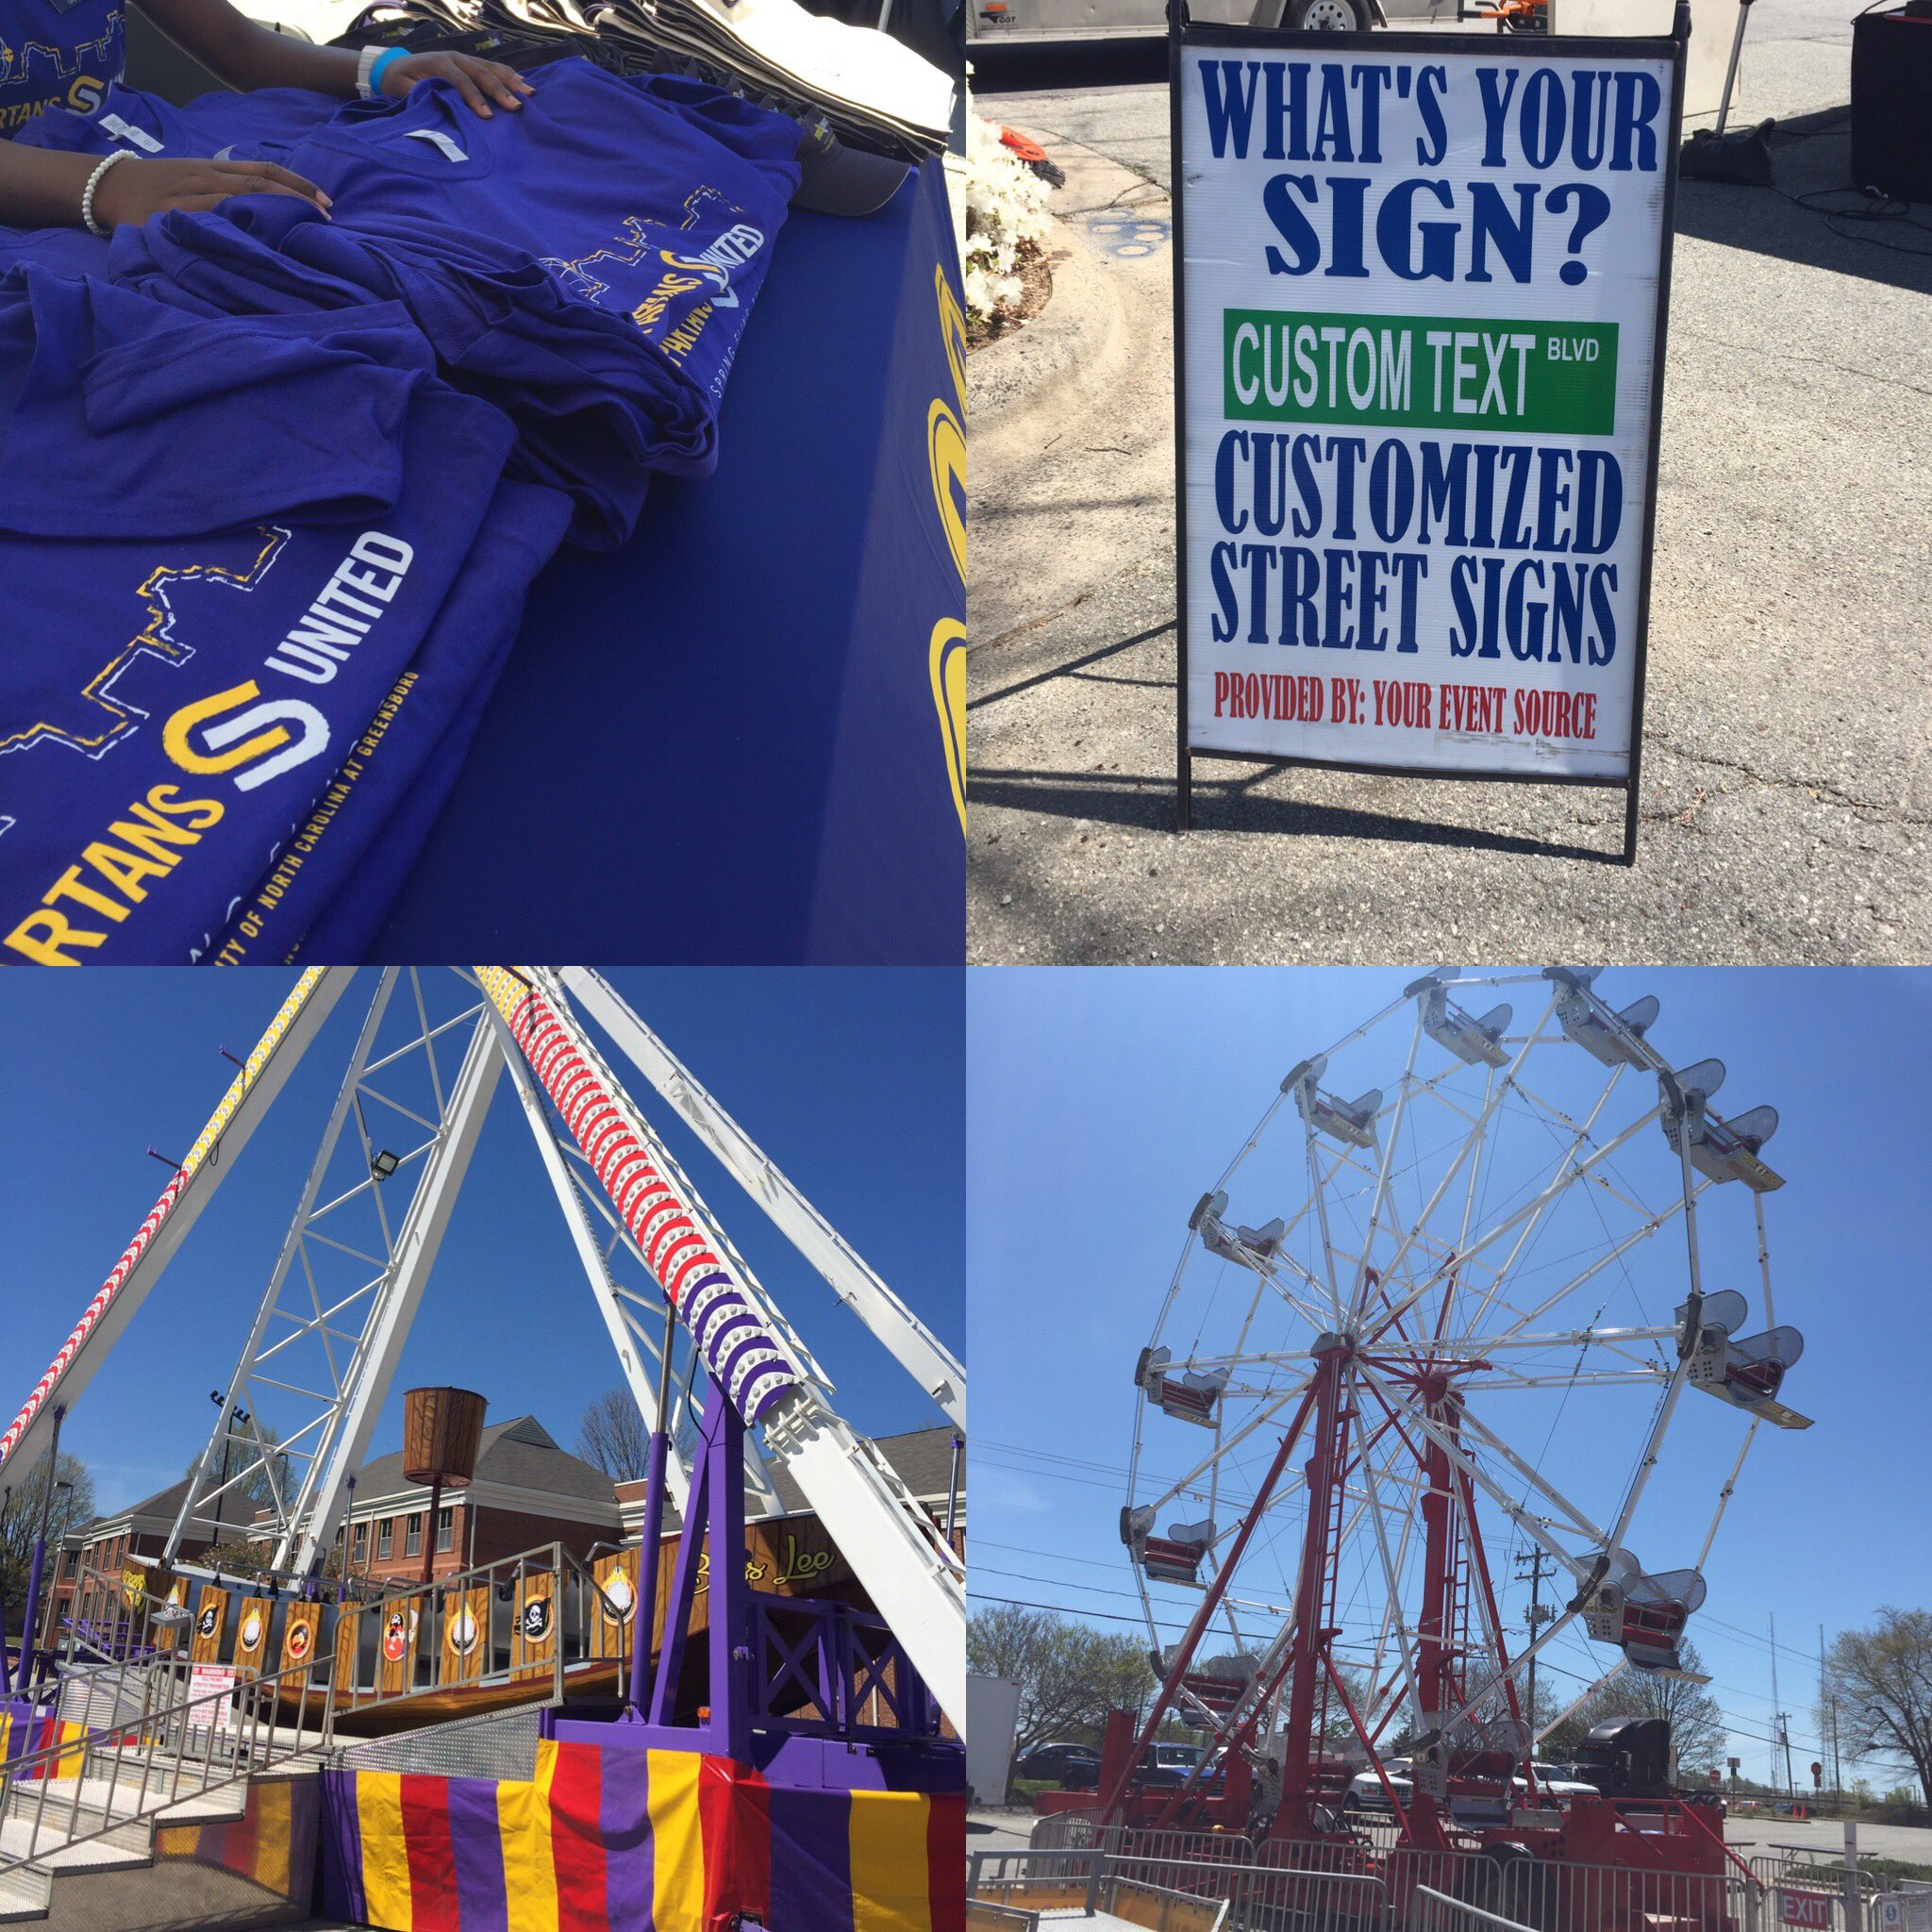 Cool Shirts ✅ Thrill Rides ✅ FREE STUFF!!! ✅ Funnel Cakes ✅ #Spartapalooza #UNCGSpringFling #AlmostTime https://t.co/DKKNUGQsP0